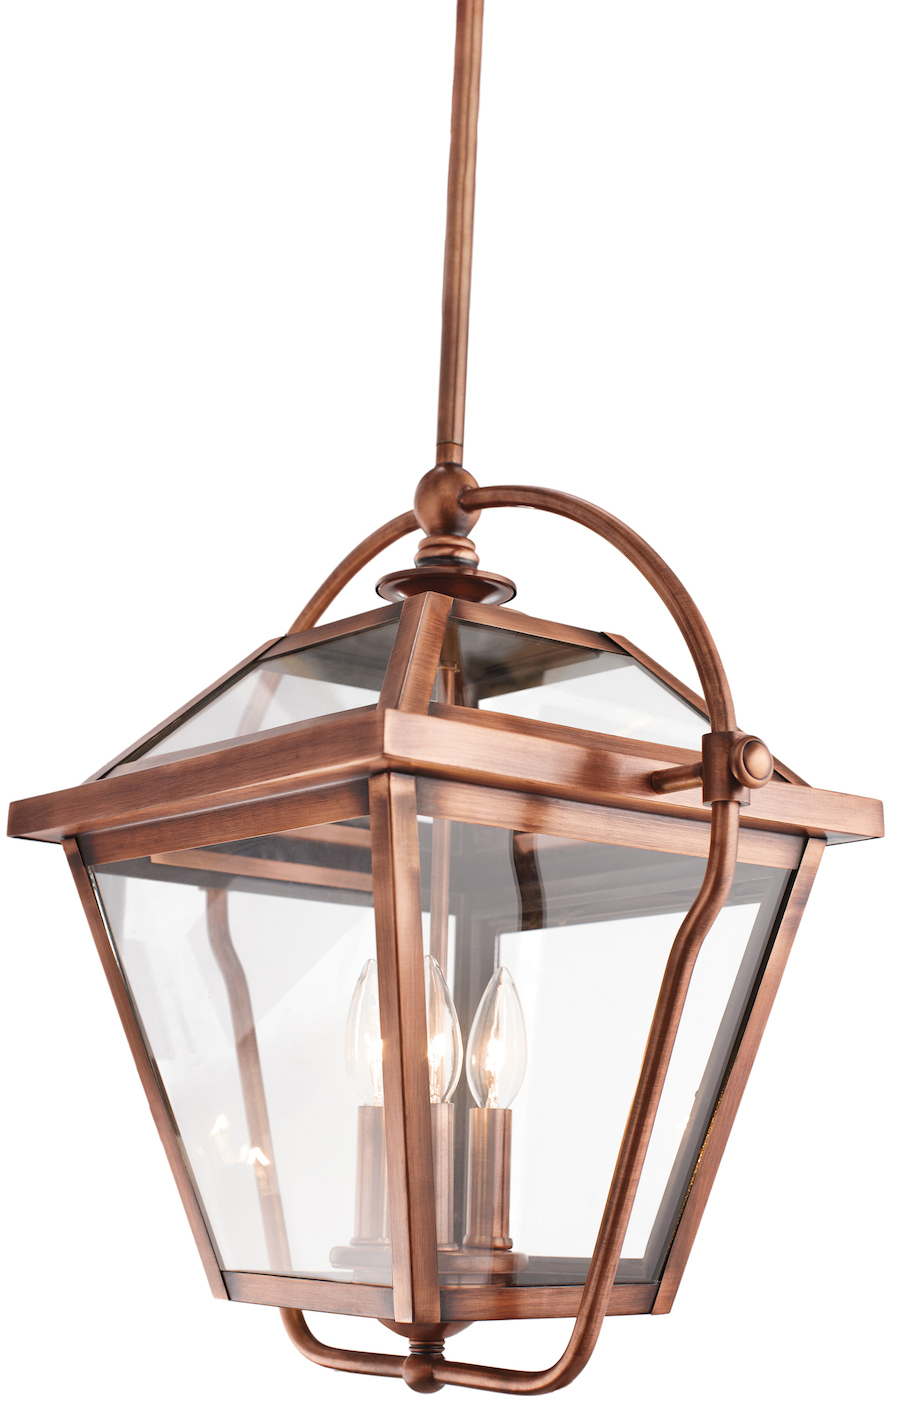 Kichler Antique Copper Ryegate 3 Bulb Indoor Pendant With